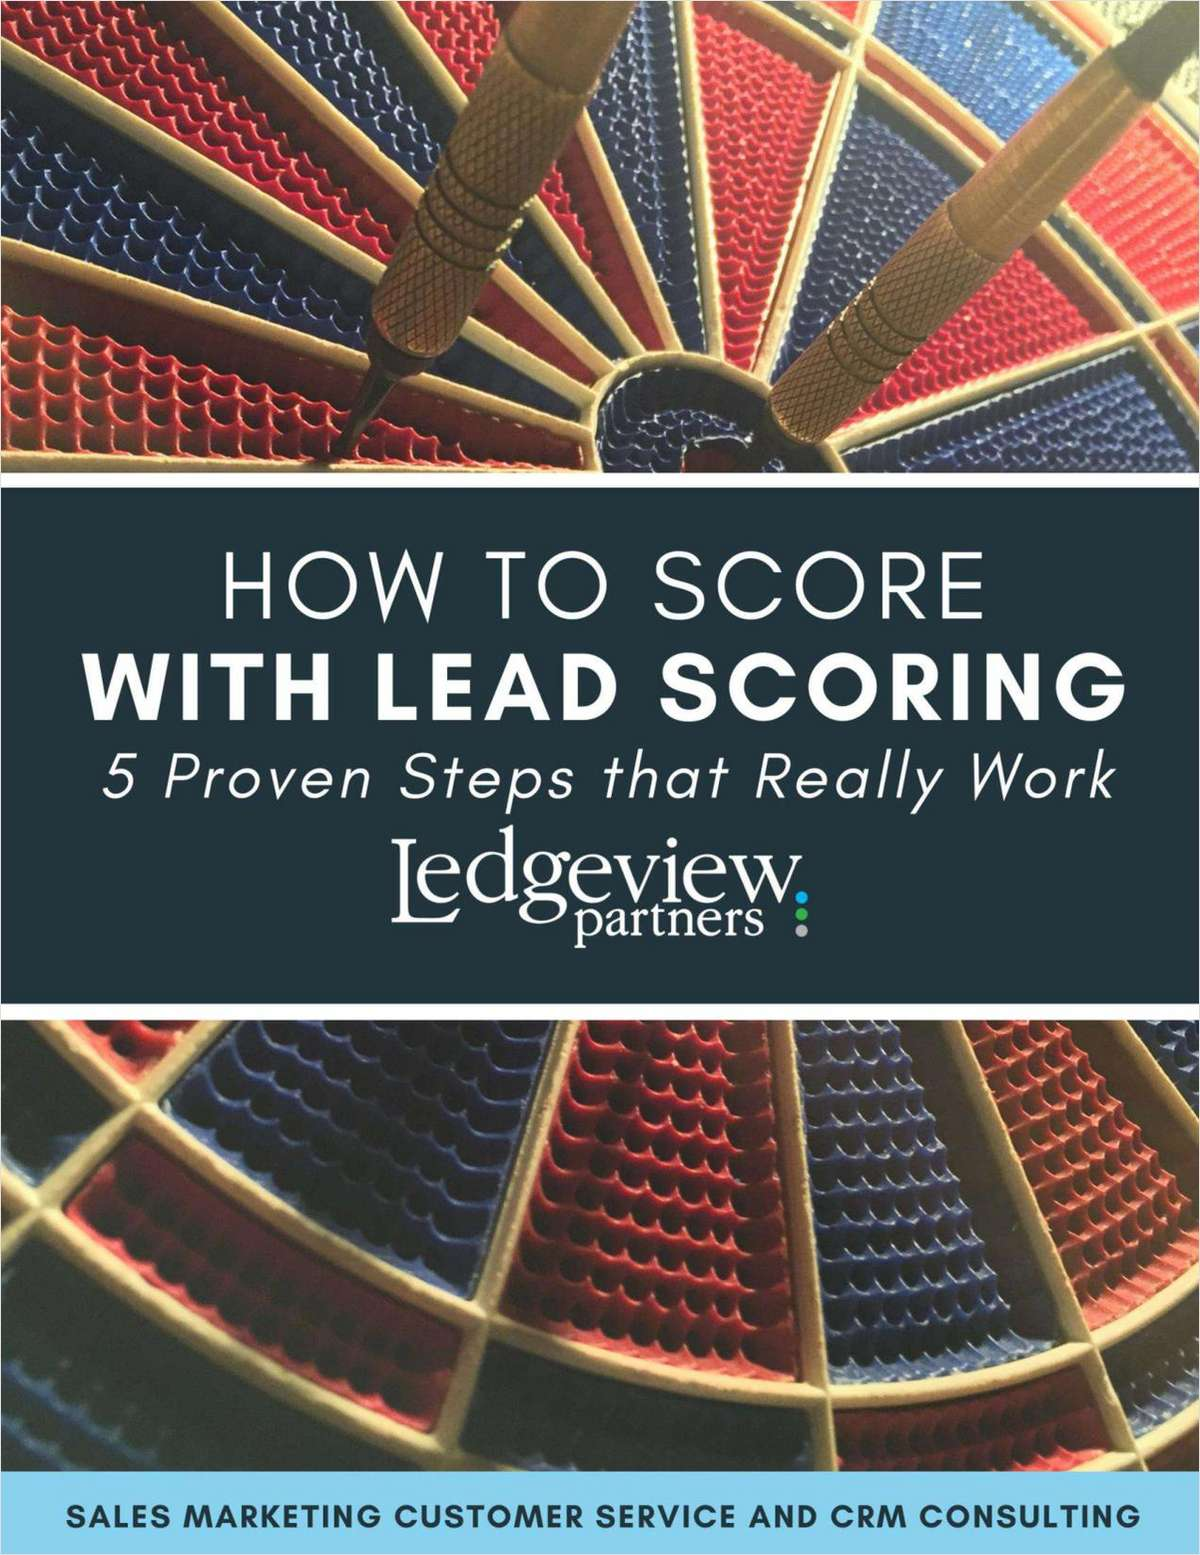 How to Score with Lead Scoring